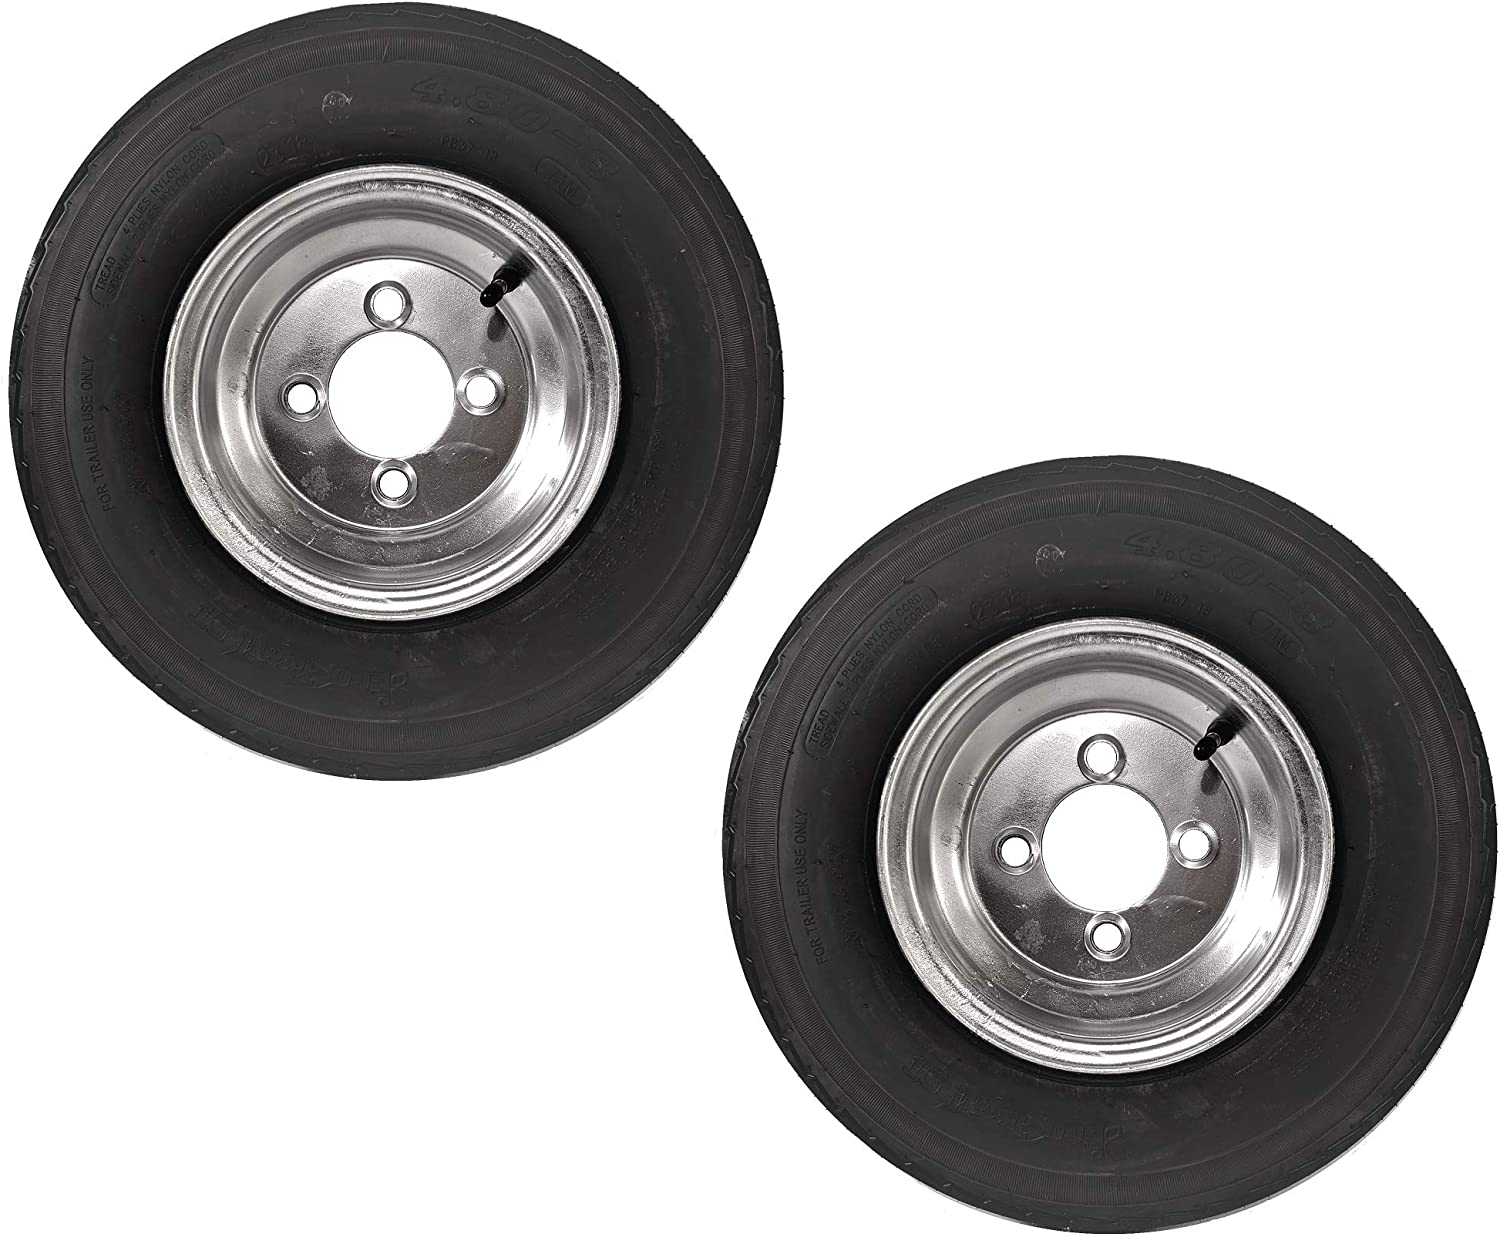 2-Pack Trailer Tires On Galvanized Wheel Rims 480-8 4.80-8 4.80 x 8 Load C 4 Lug